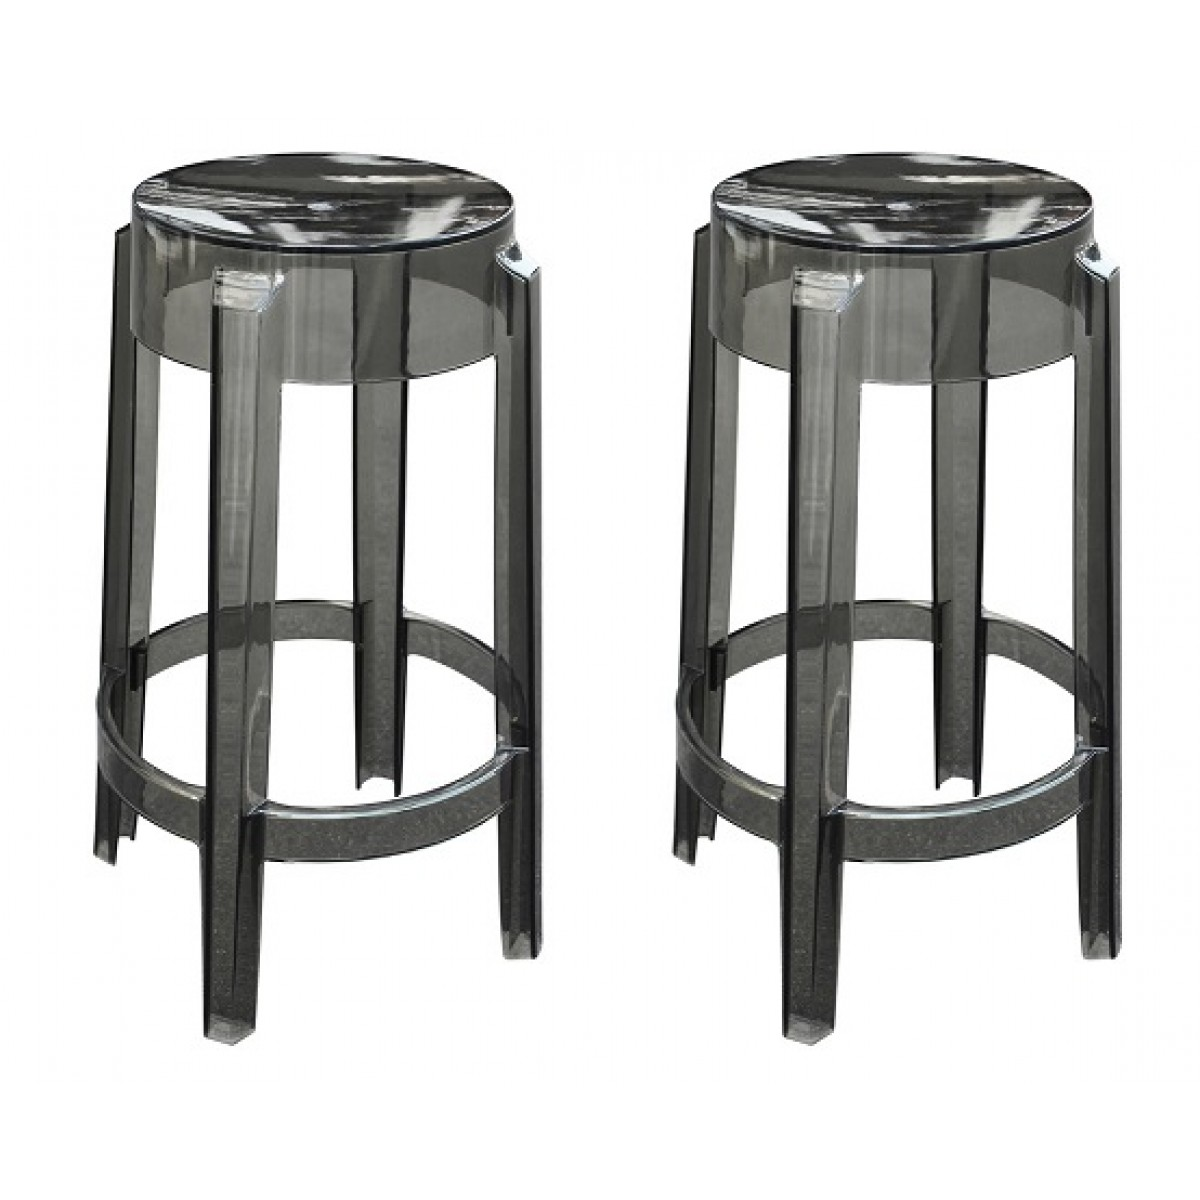 ghost chair bar stool best camp for backpacking set of 2 victoria style counter smoke color